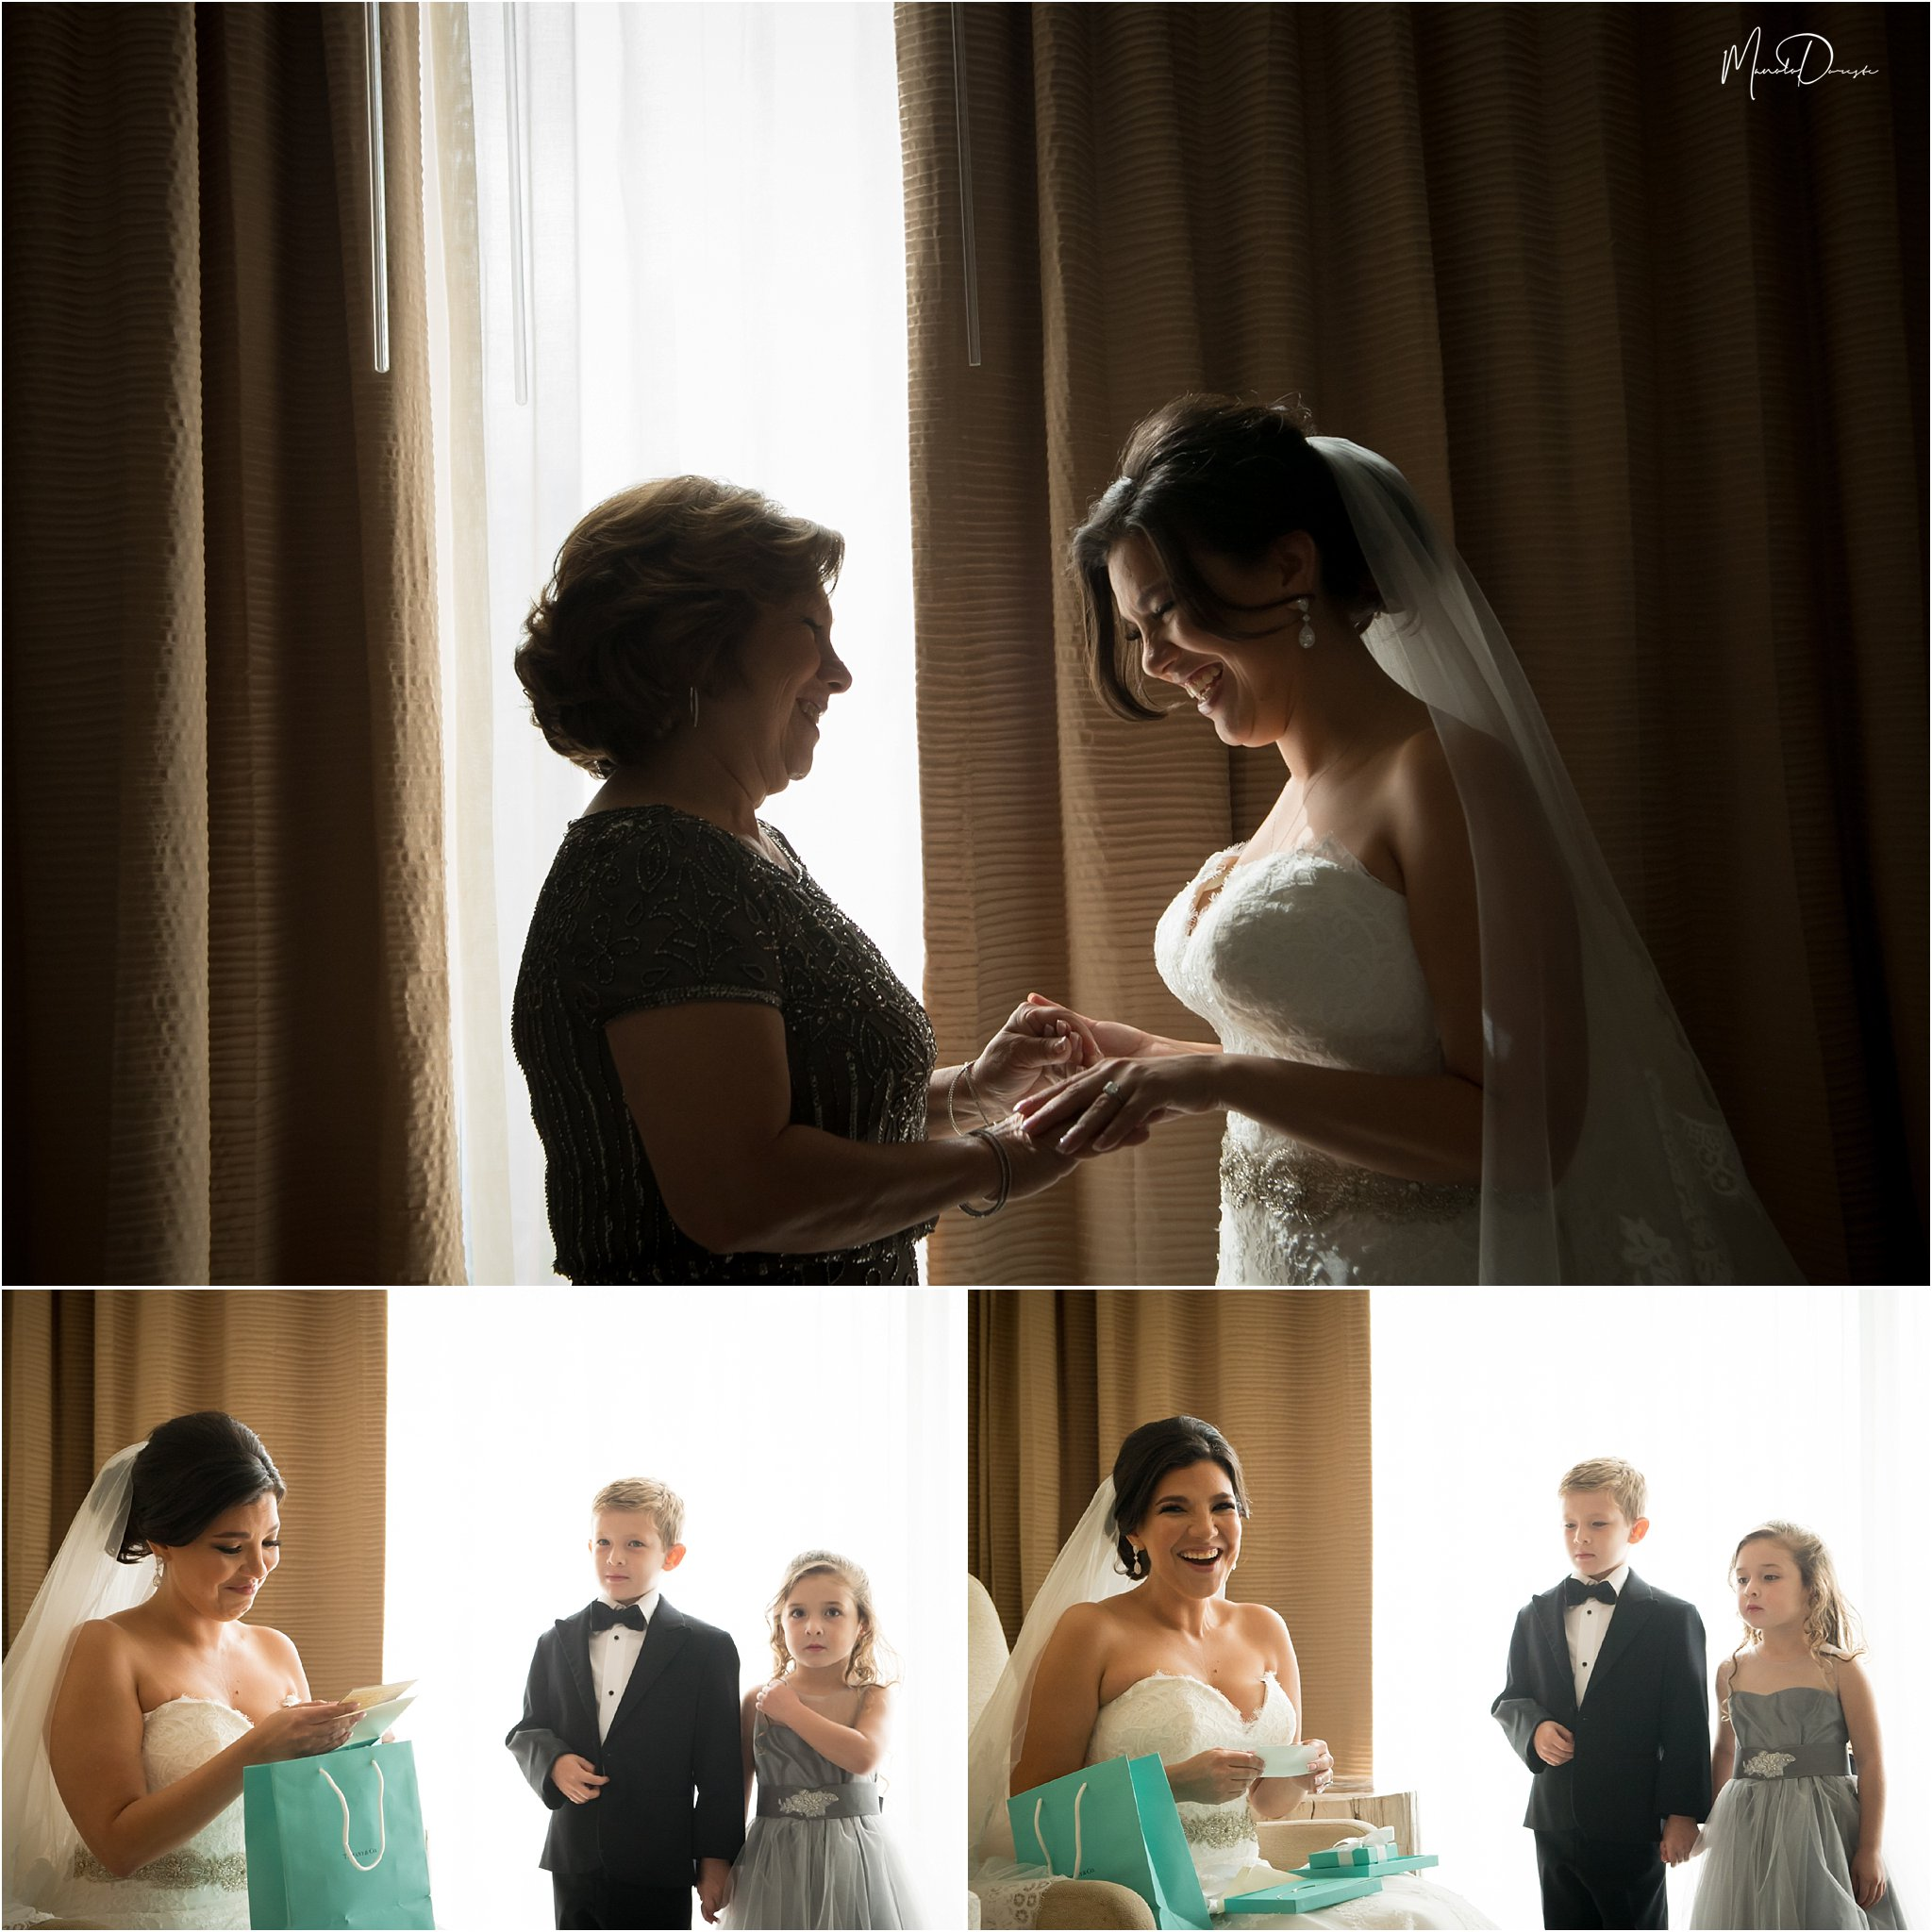 0083_ManoloDoreste_InFocusStudios_Wedding_Family_Photography_Miami_MiamiPhotographer.jpg